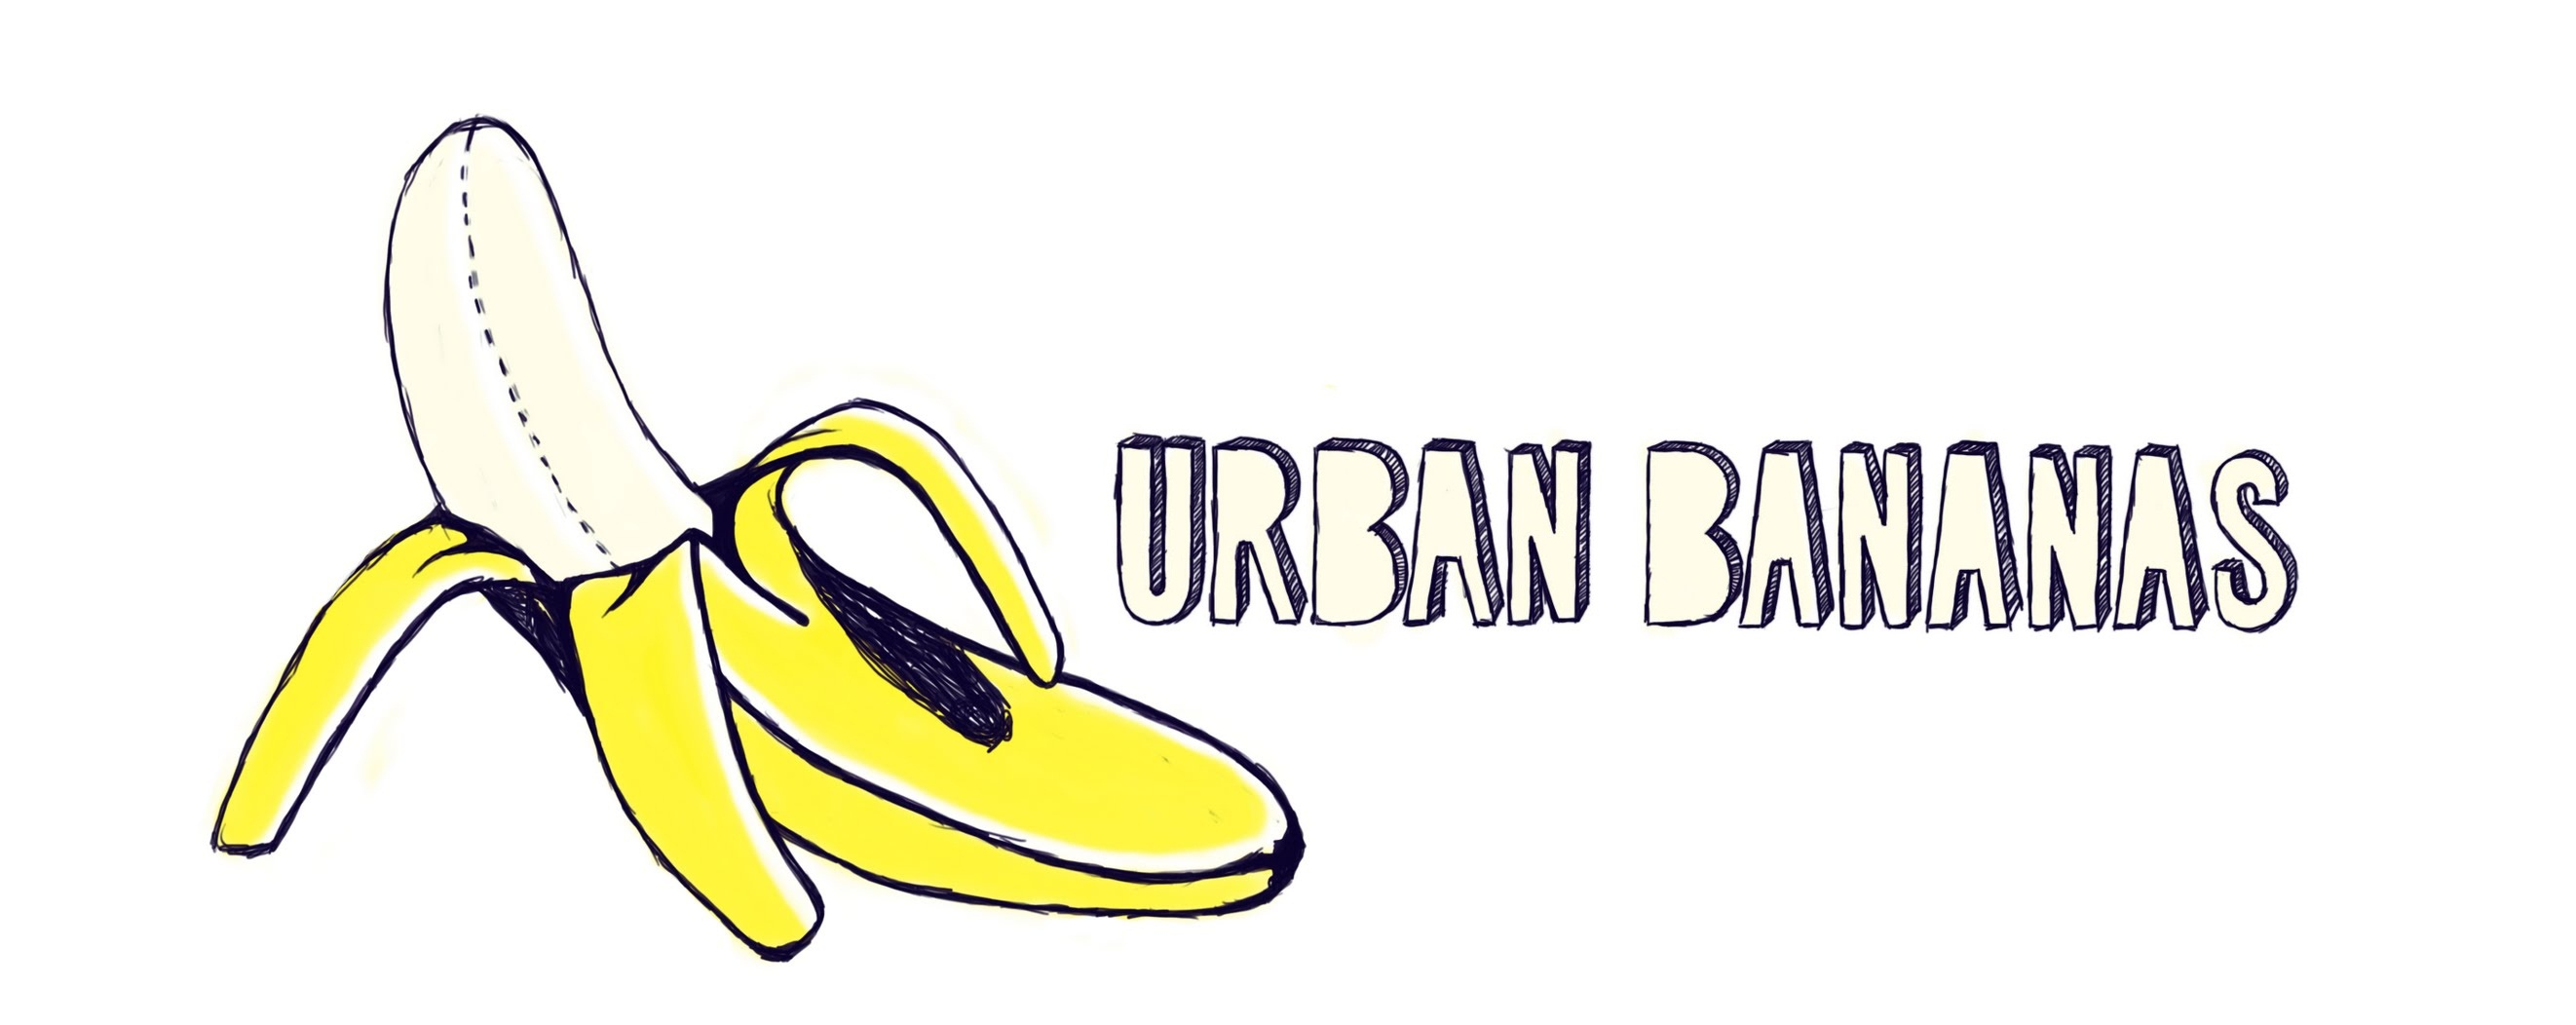 Urban Bananas